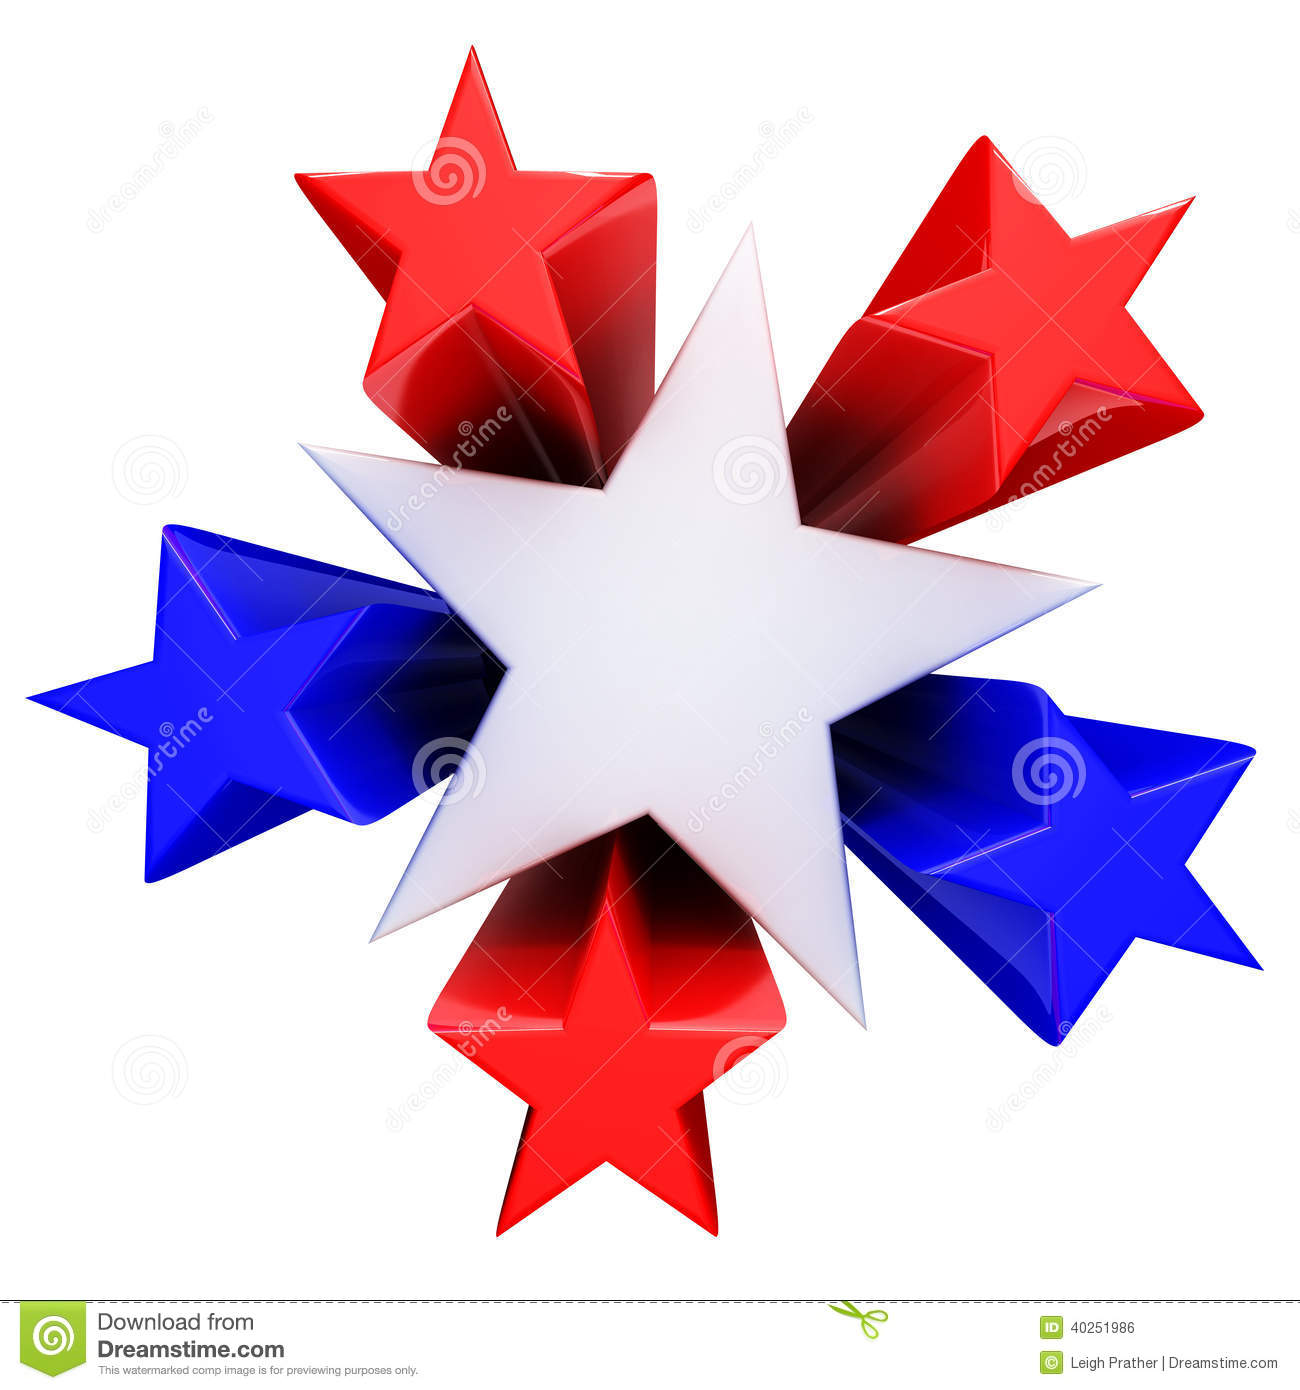 Red, White And Blue Stars Stock Illustration - Image: 40251986 - photo#20